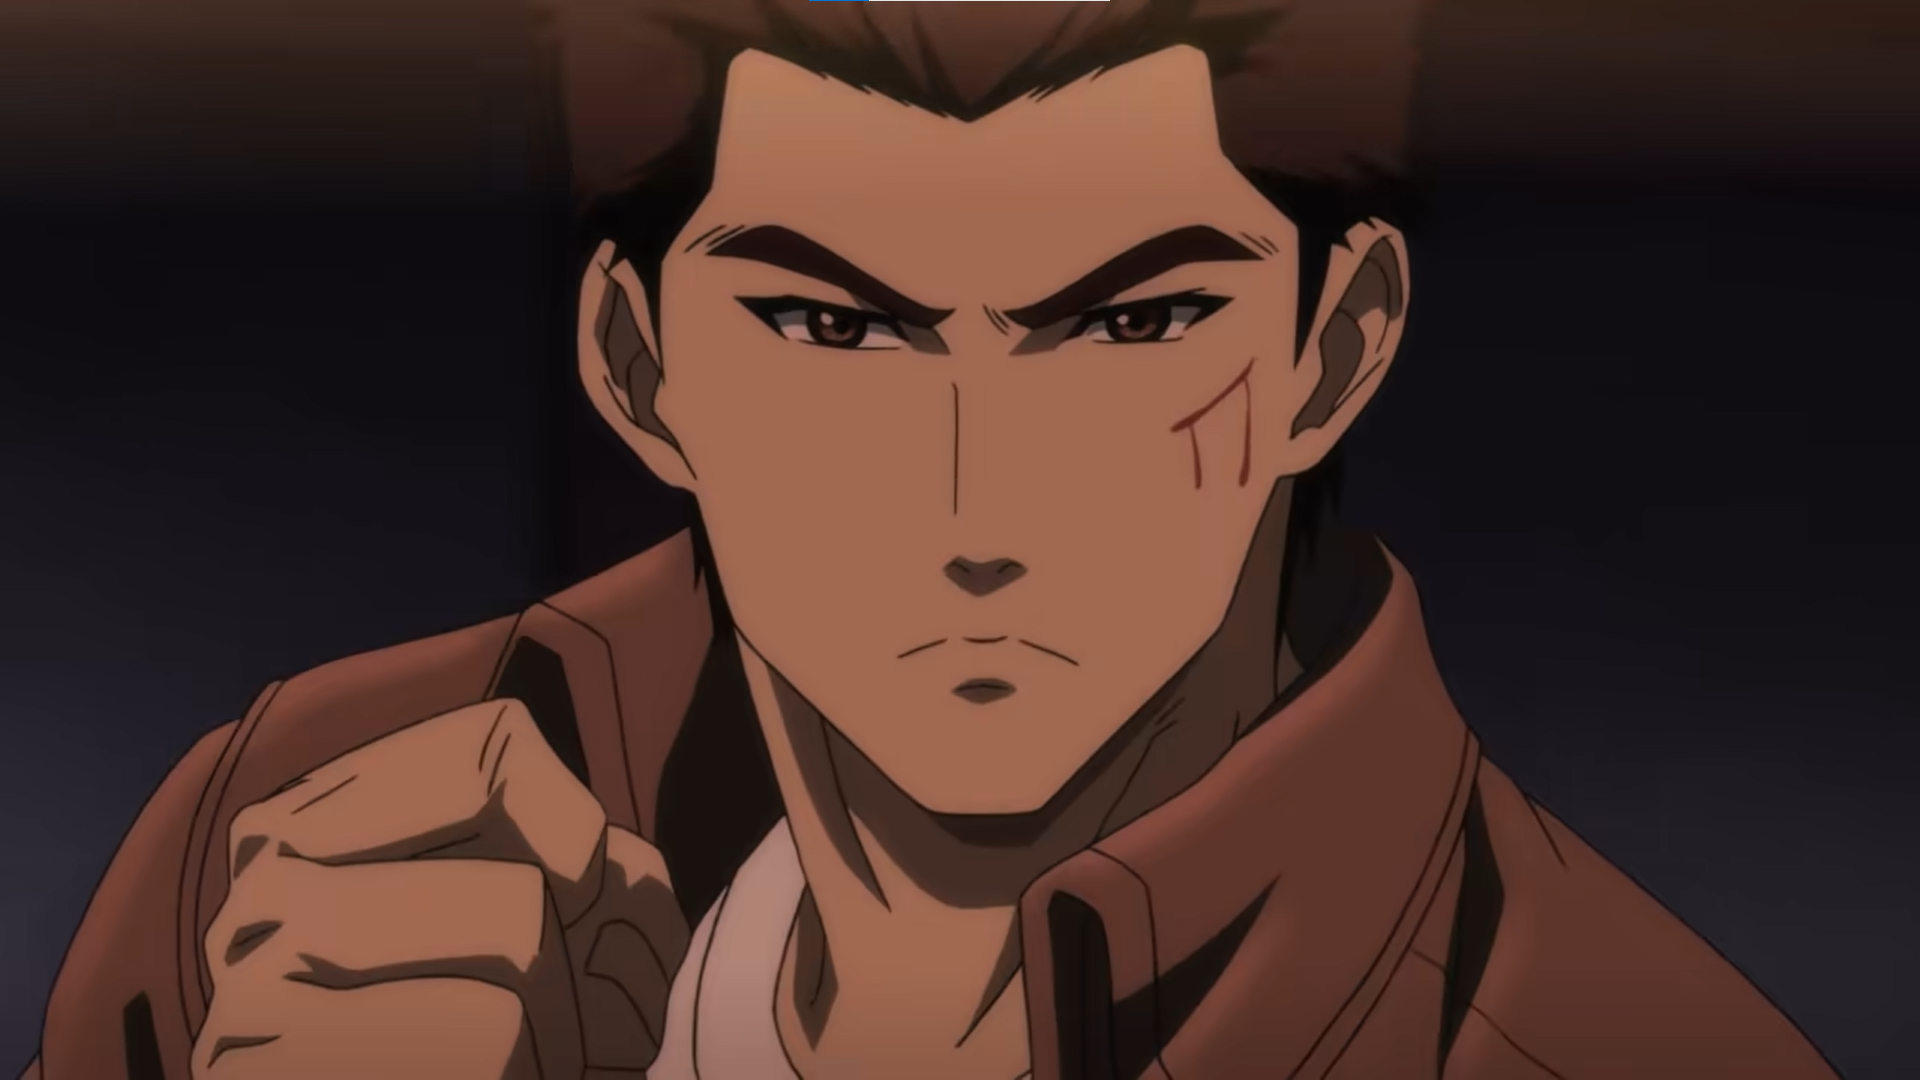 Ryo from the Shenmue anime